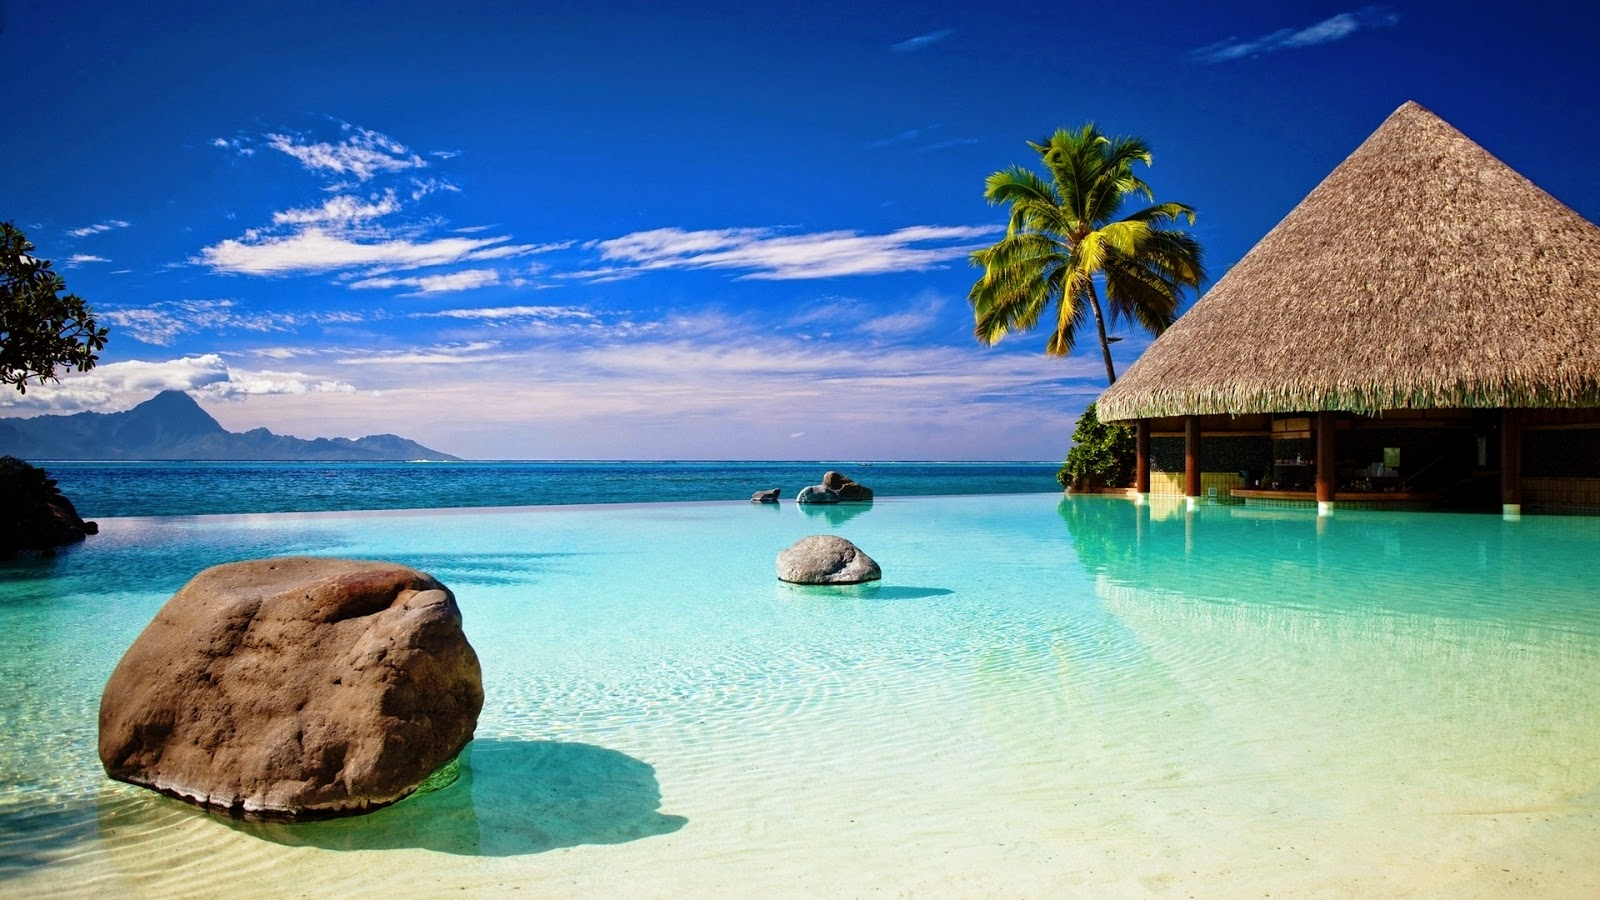 The World Most Beautiful Beaches Wallpapers Full HD